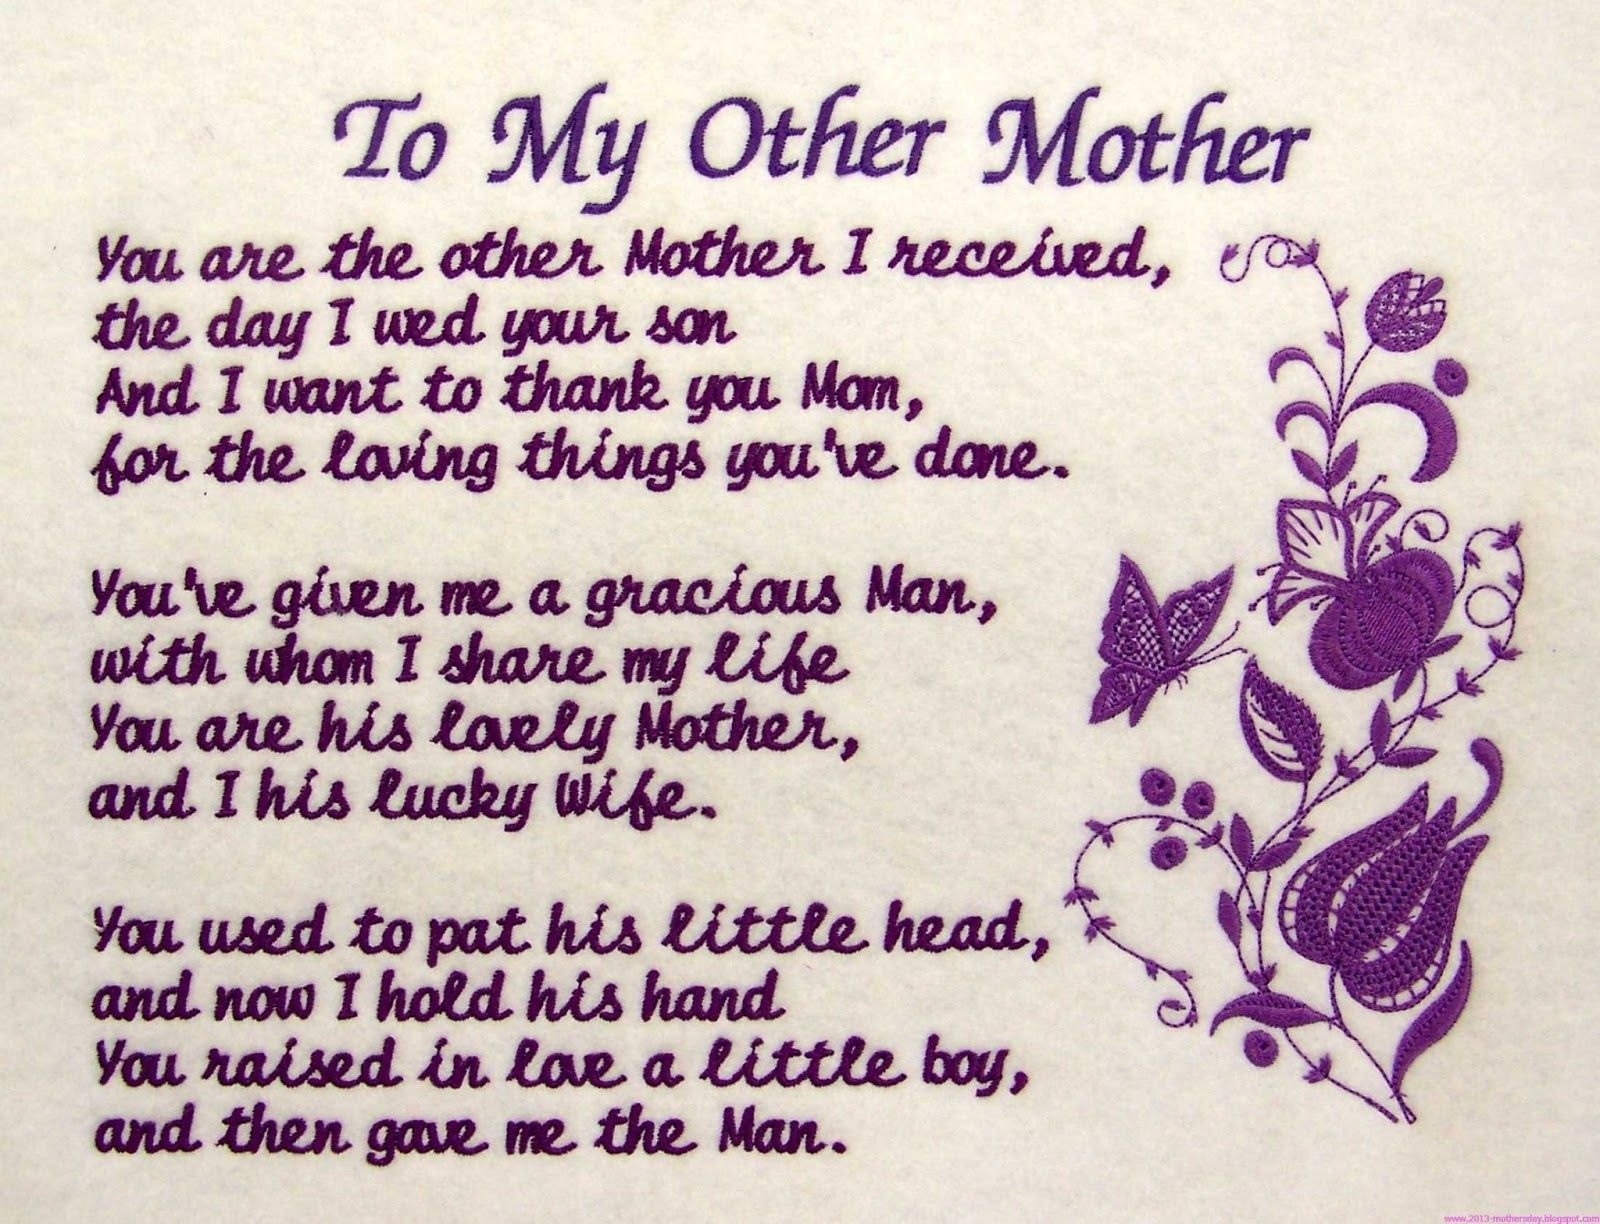 to mother in law best happy mothers day 2015 quotes from daughter to mother in law best happy mothers day 2015 quotes from daughter in law